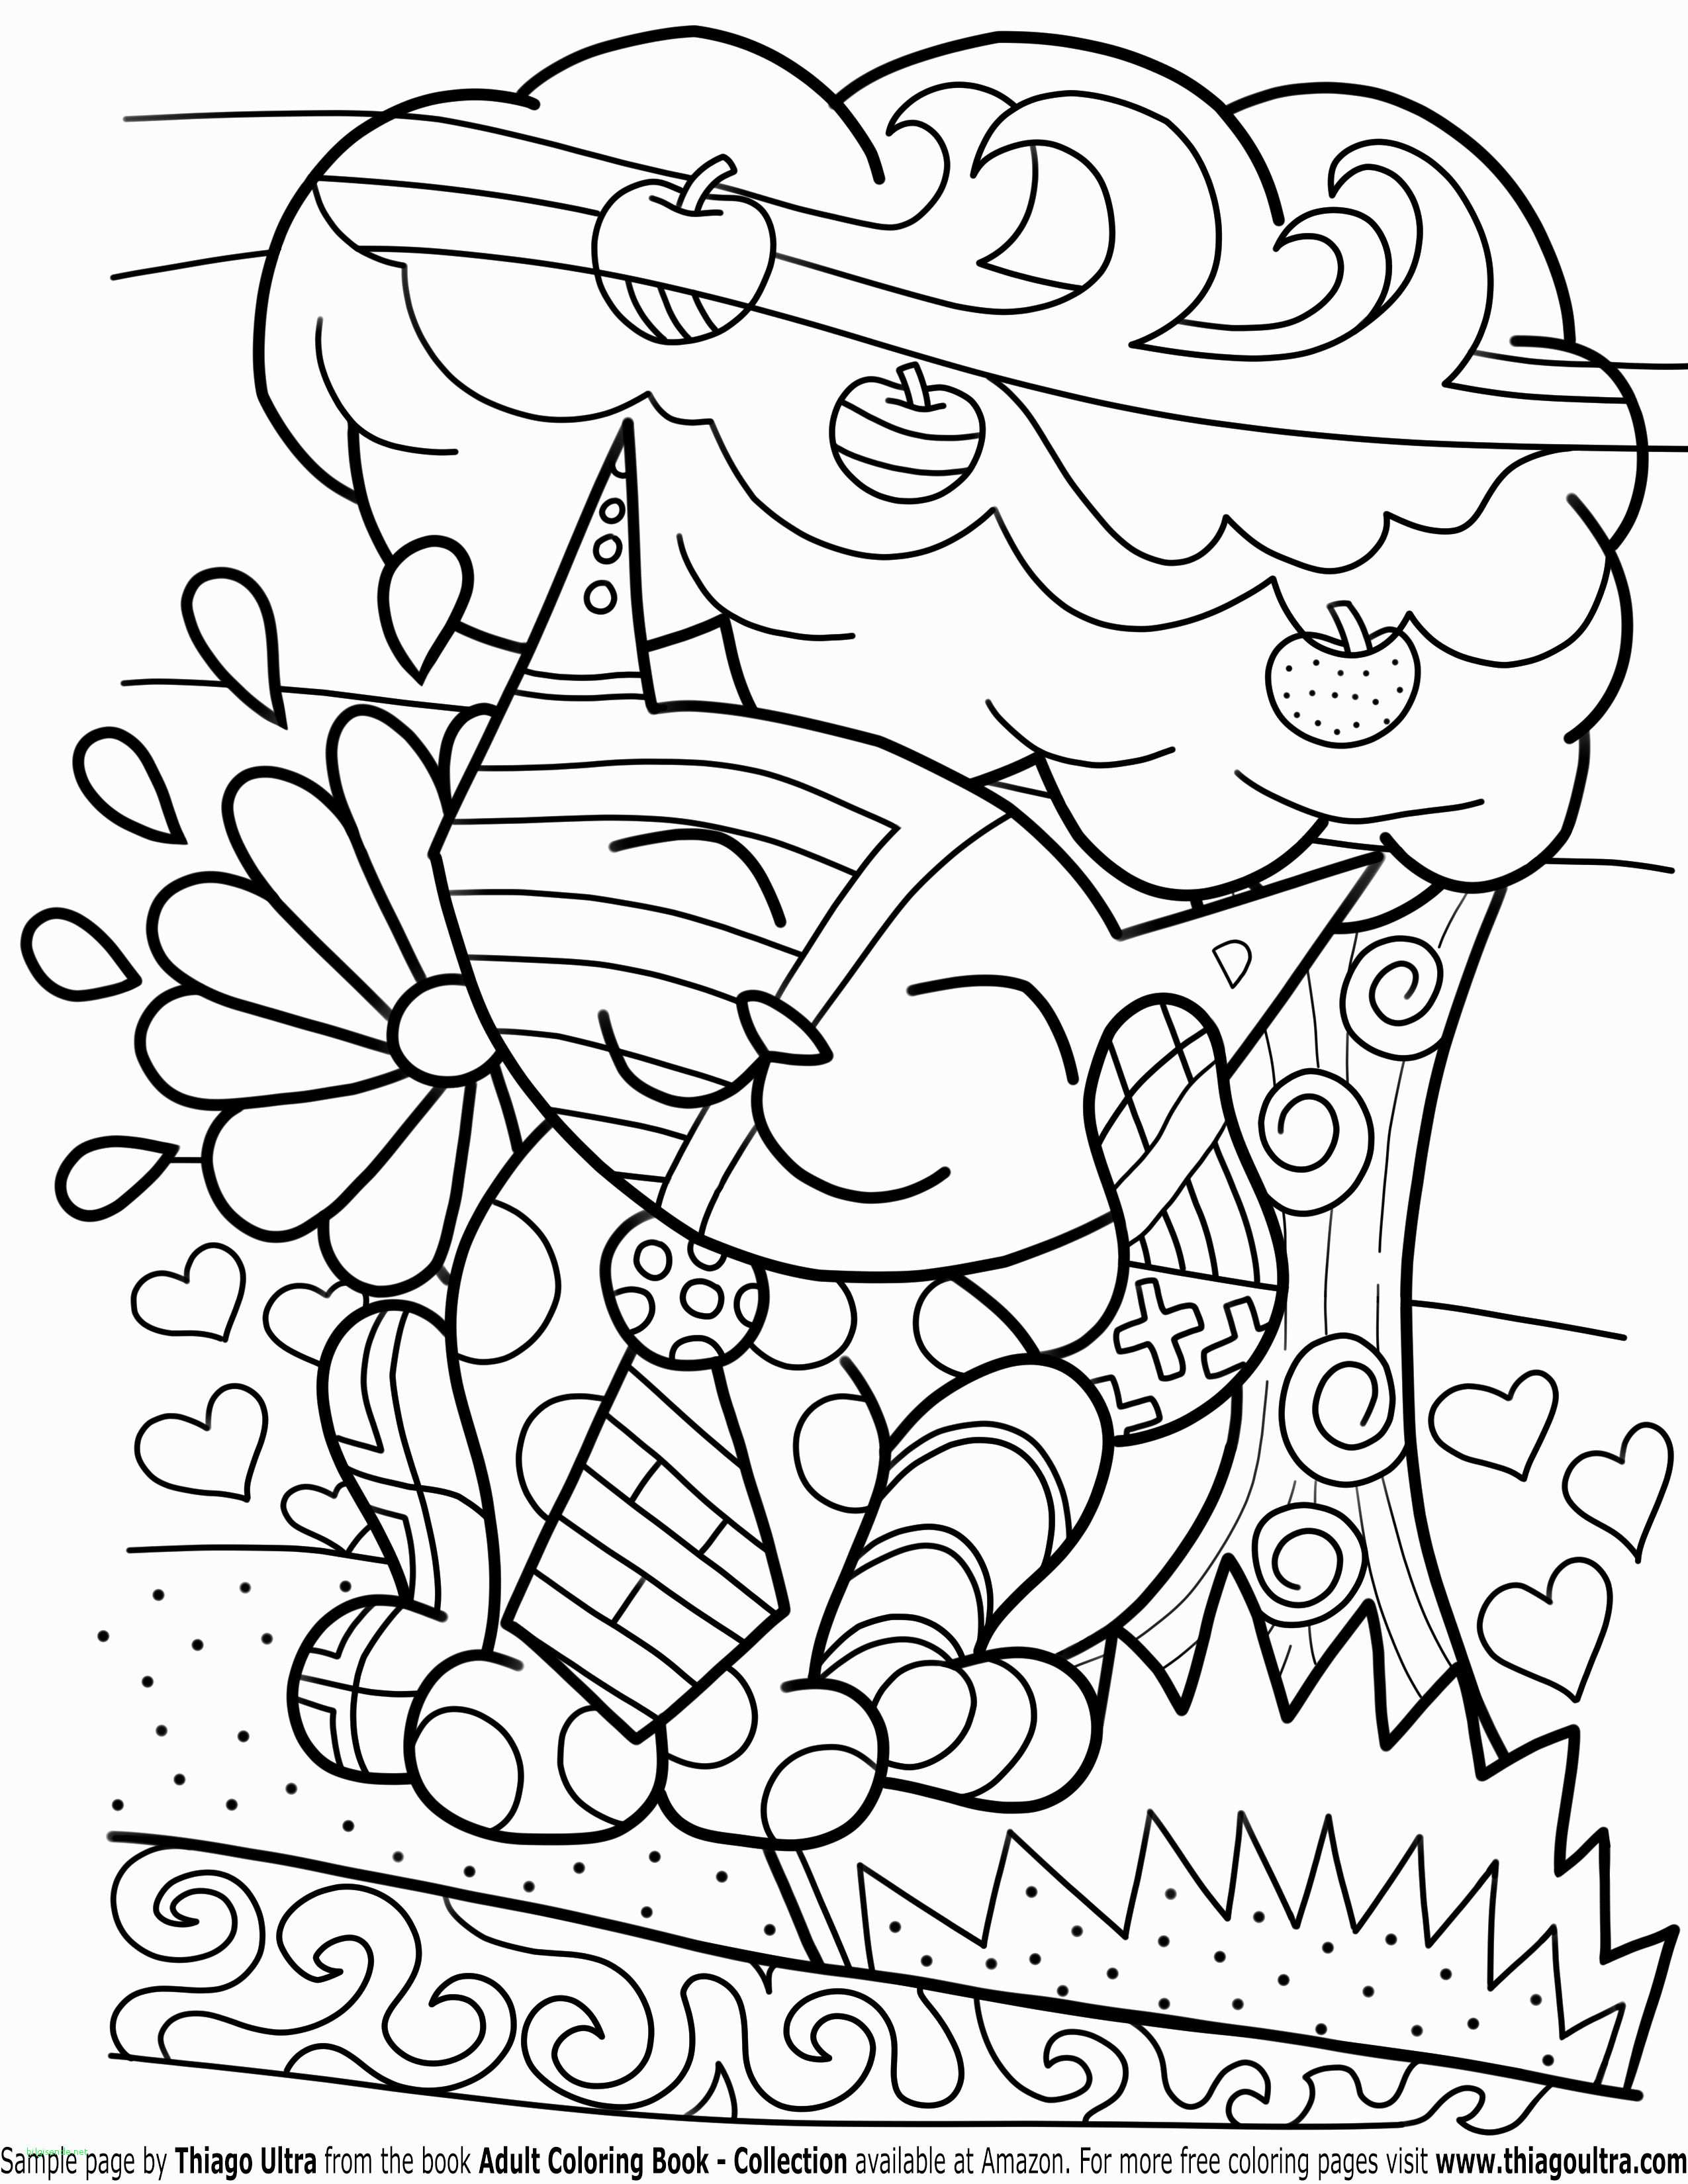 coloring pages cars 2 Download-Sports Coloring Pages Best Lovely Colouring Pages Disney Cars 2 2-p